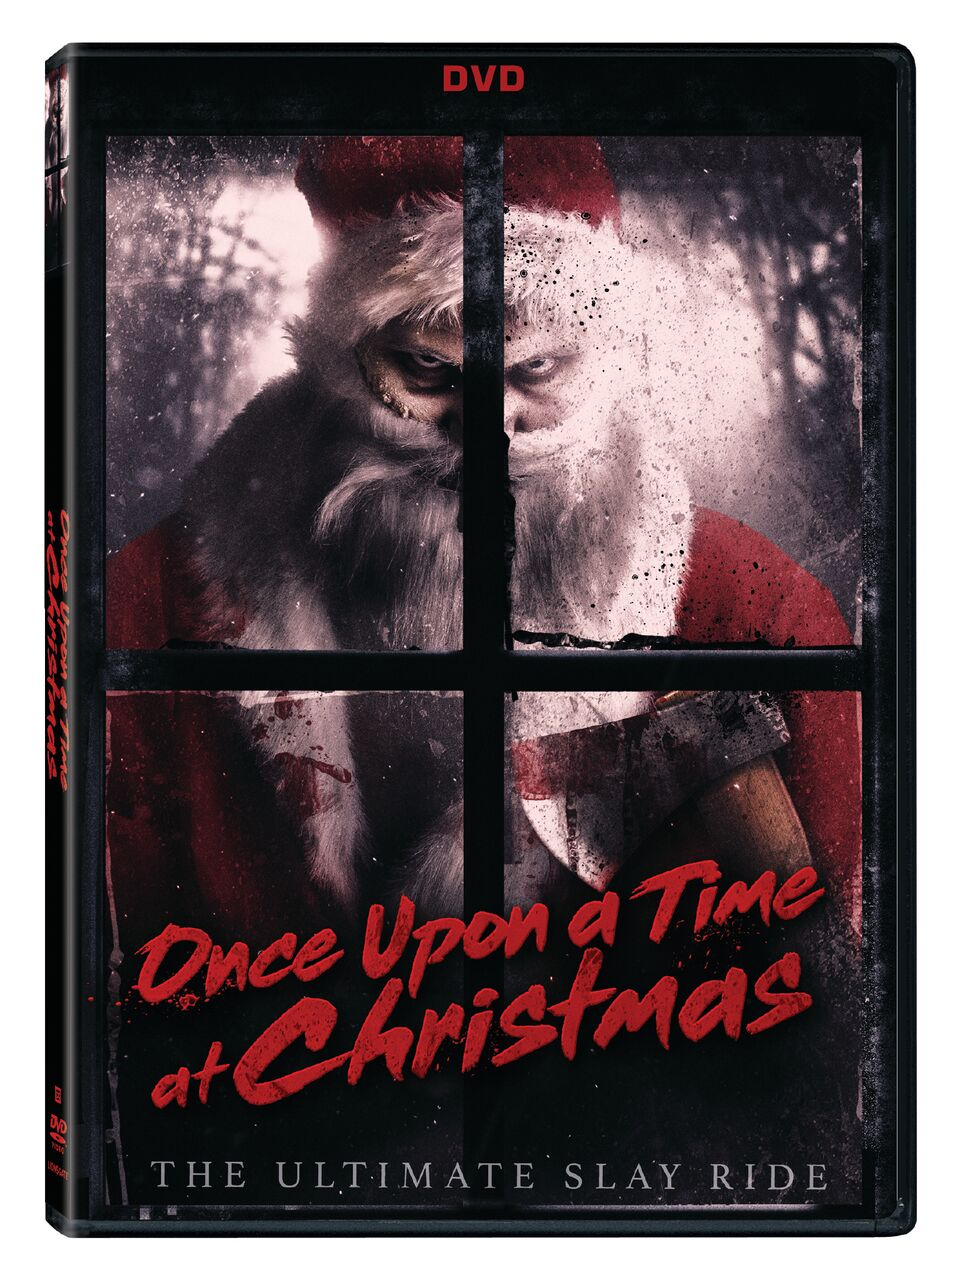 'Once Upon a Time at Christmas' Available December 11th